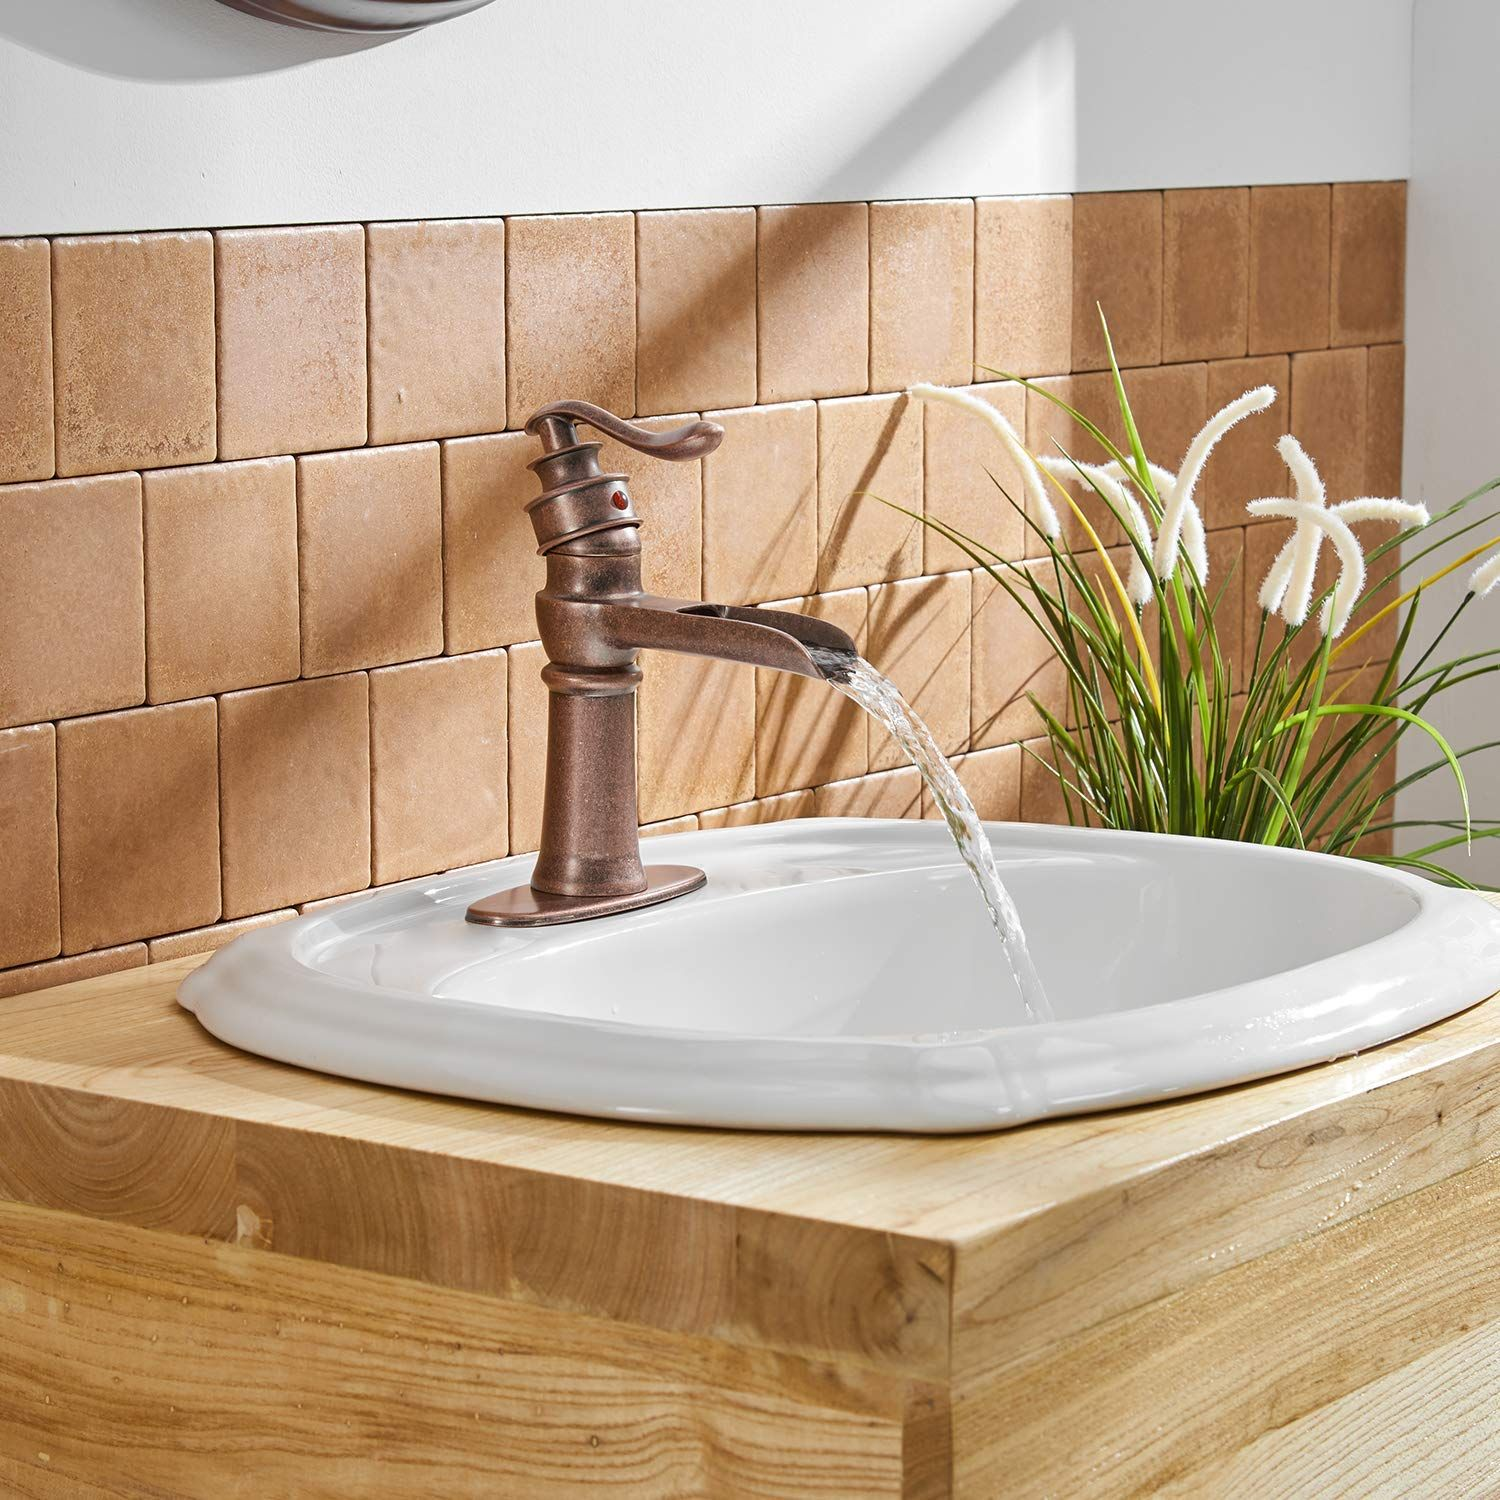 Commercial Waterfall Bathroom Faucet Single Handle Lever Hole Deck Mount Antique Copp Single Handle Bathroom Faucet Bathroom Faucets Waterfall Restroom Remodel